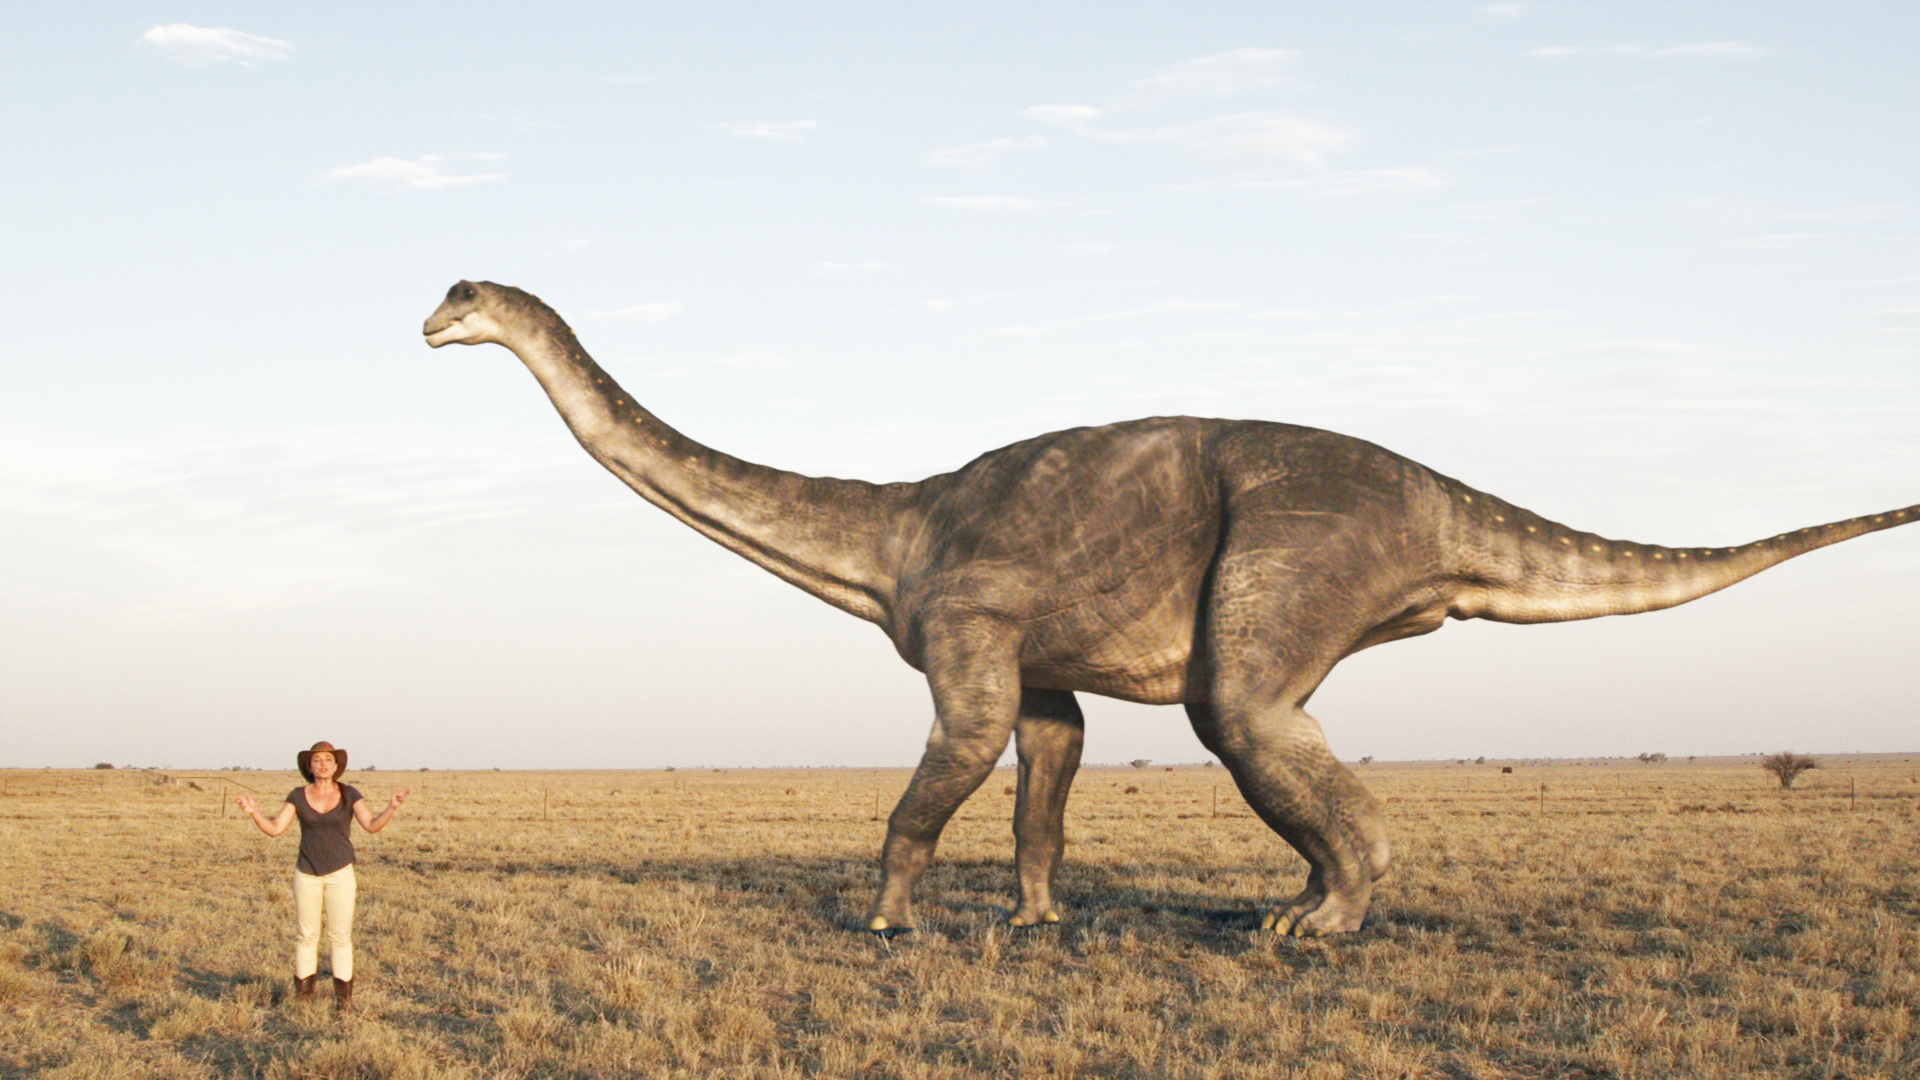 «Dinosaurs in the Outback»